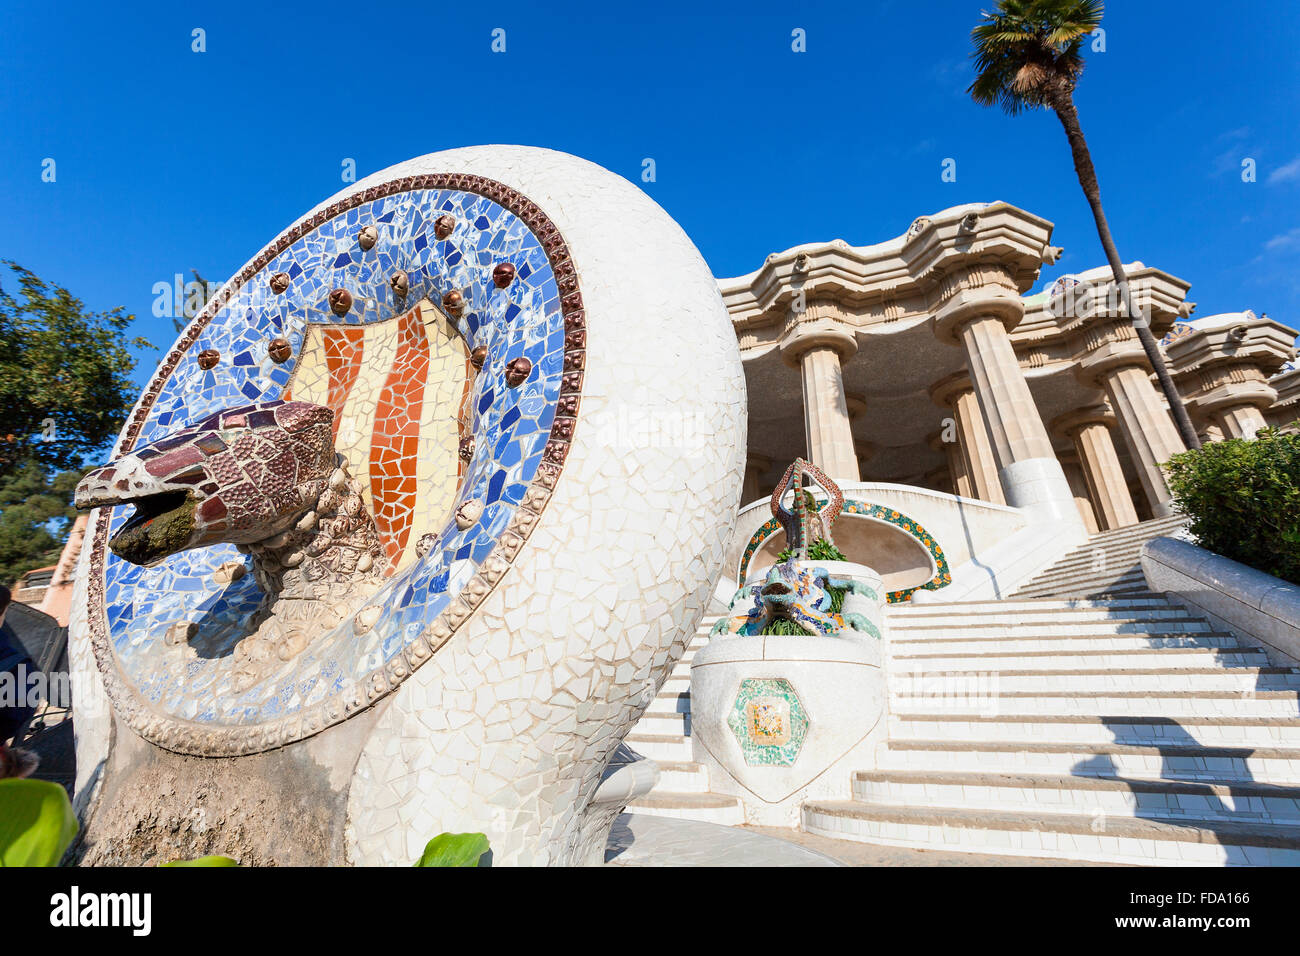 Barcelona, Park Guell by Antoni Gaudi - Stock Image